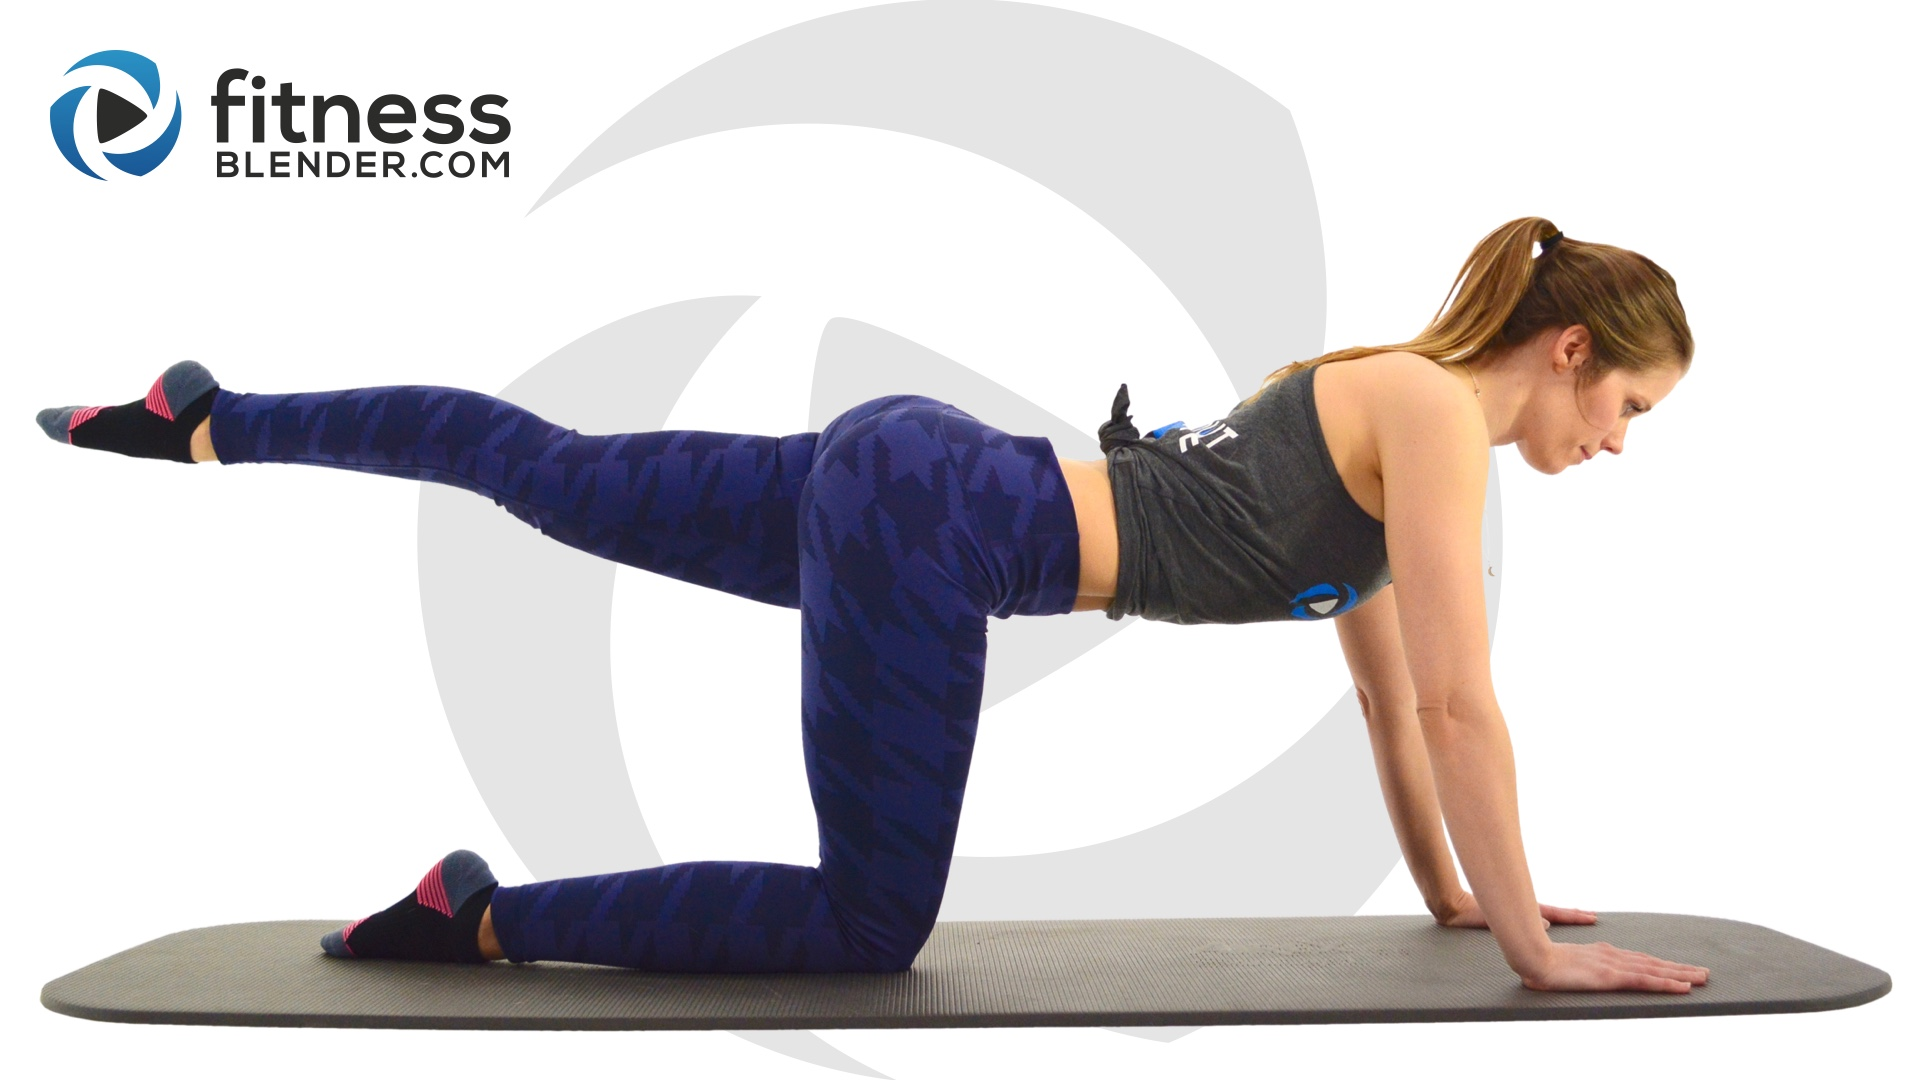 Fitness blender pilates